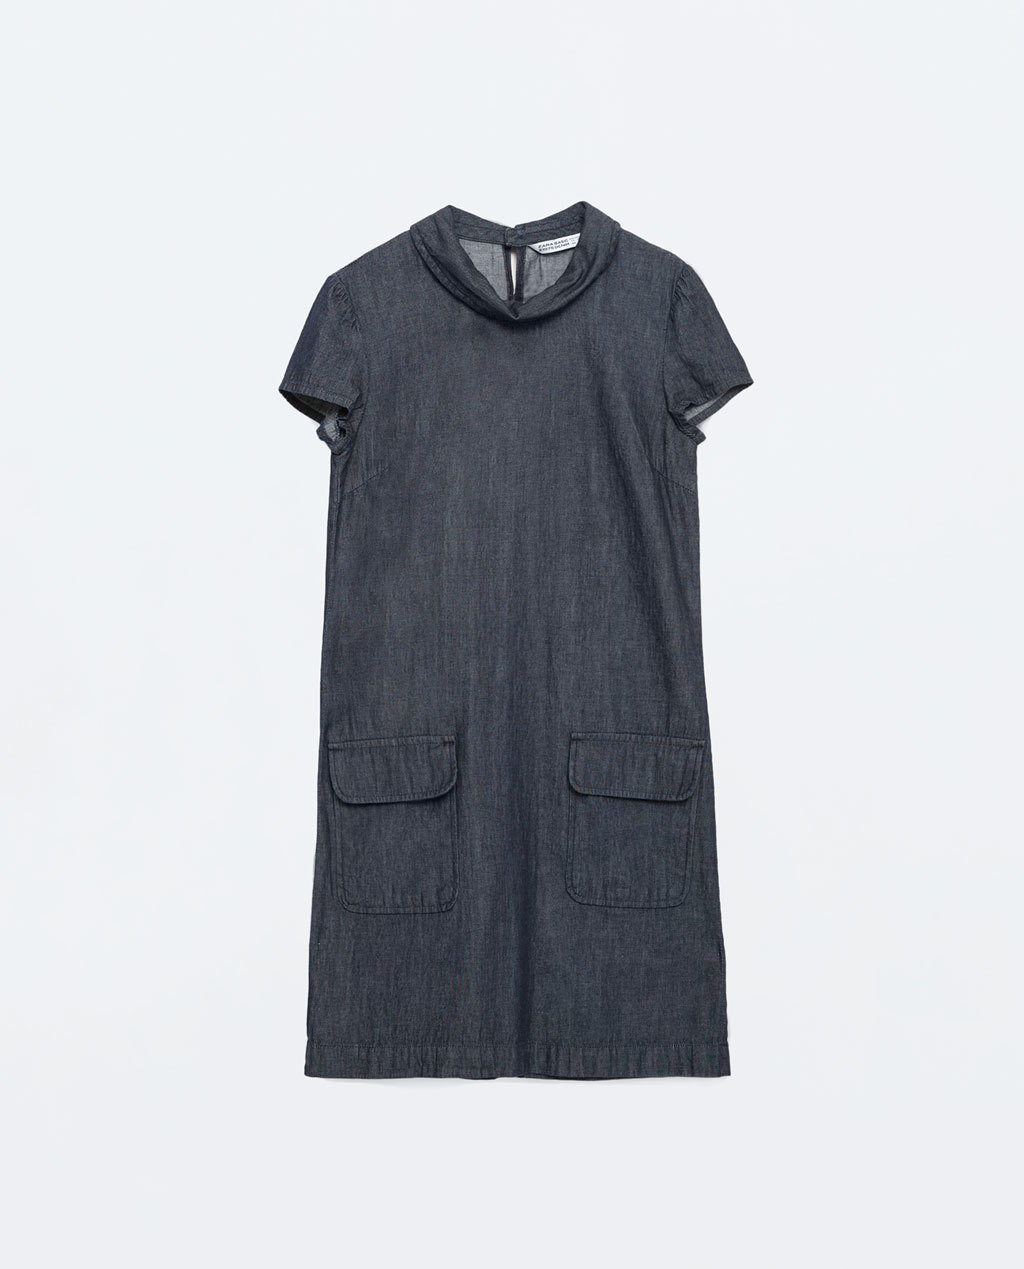 Denim Dress - style: shift; length: mid thigh; neckline: cowl/draped neck; pattern: plain; predominant colour: navy; occasions: casual, creative work; fit: soft a-line; fibres: cotton - 100%; hip detail: subtle/flattering hip detail; sleeve length: short sleeve; sleeve style: standard; texture group: cotton feel fabrics; pattern type: fabric; pattern size: standard; season: s/s 2016; wardrobe: basic